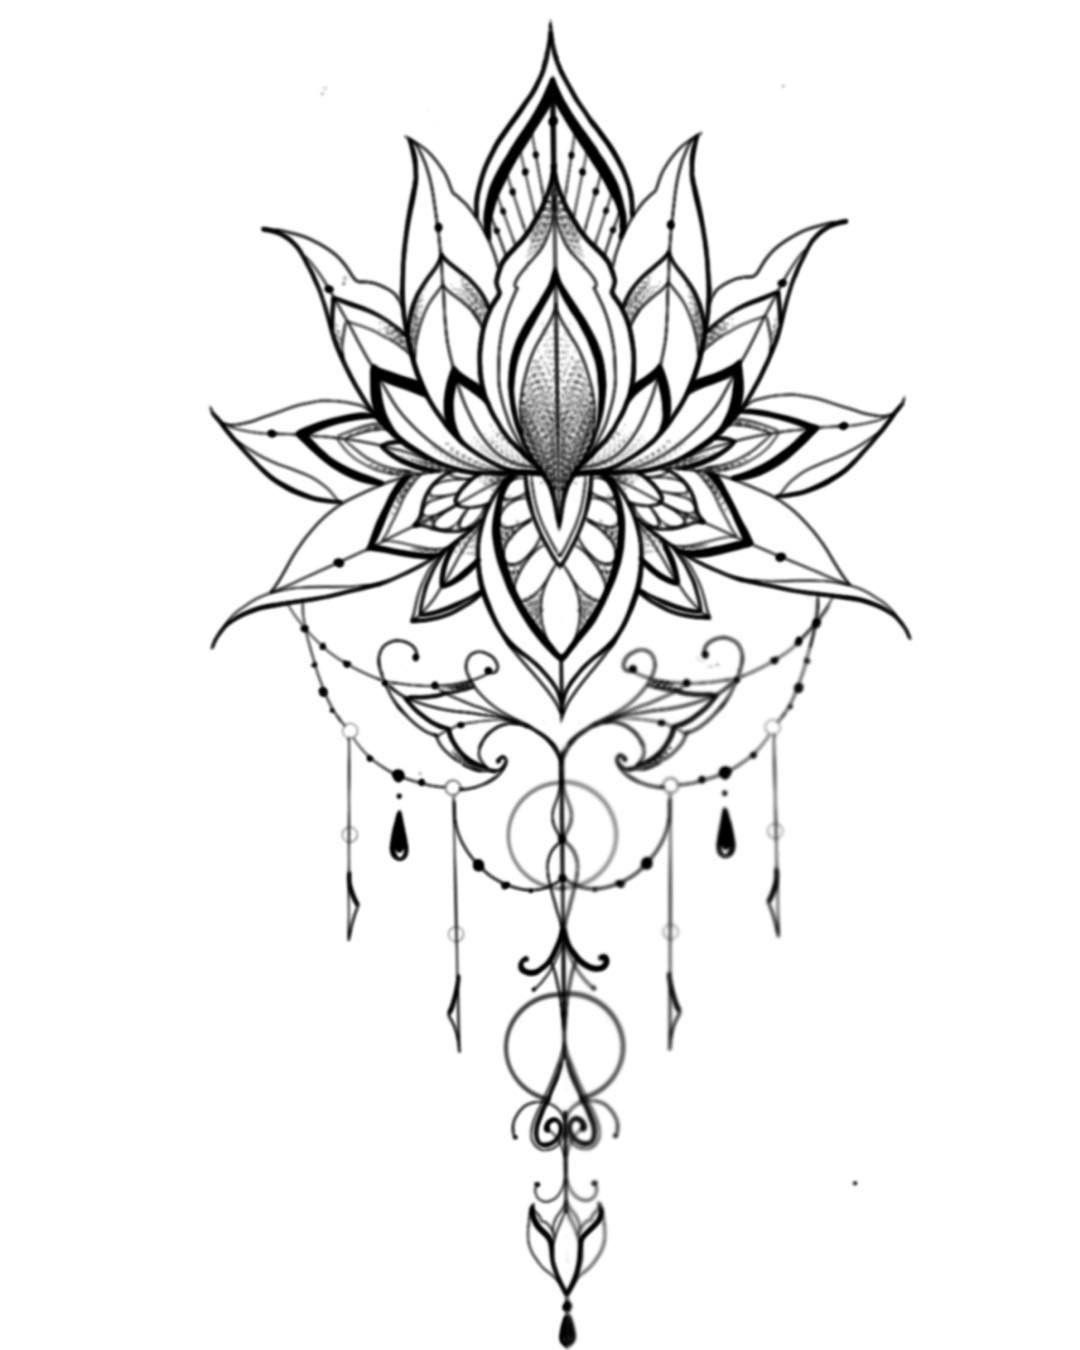 Her Crochet Mandala Tattoo Her Crochet Models Were Added To Our Website As Quickly As Pos In 2020 Lotus Tattoo Design Simple Mandala Tattoo Mandala Tattoo Design